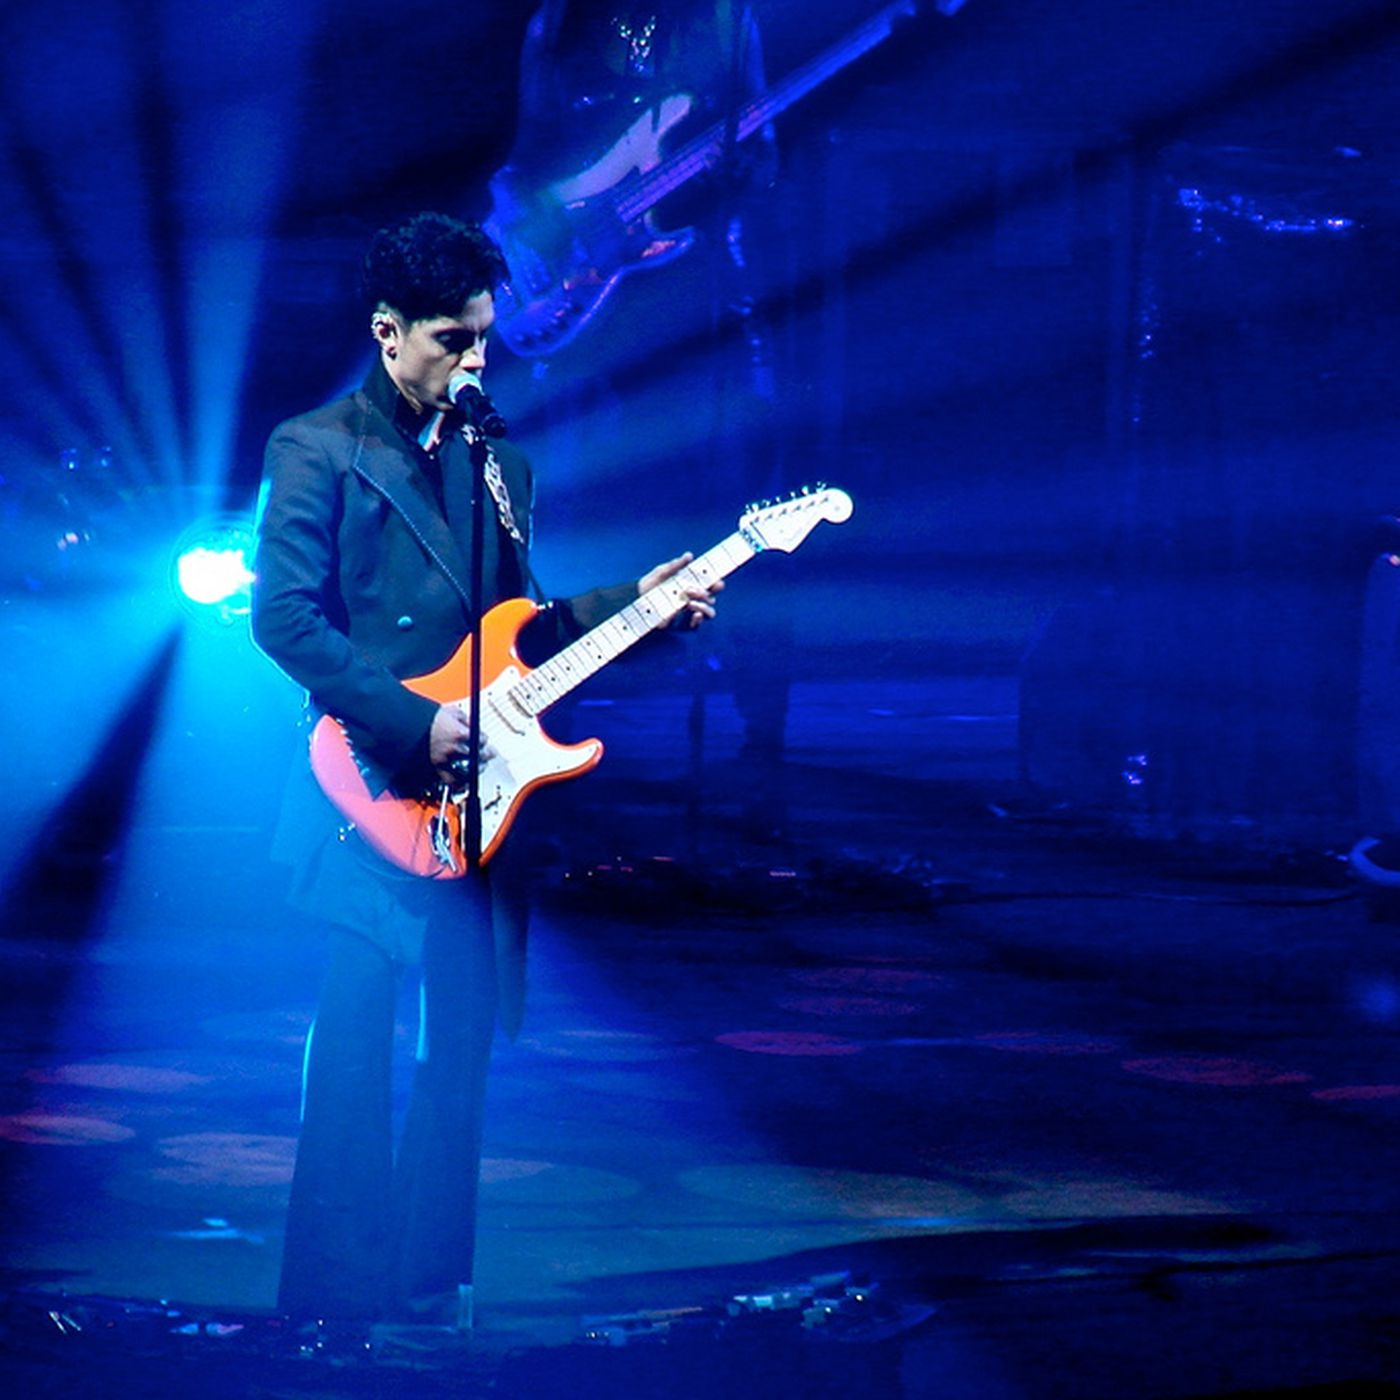 Little red lawsuit: Prince sues 22 people for pirating his